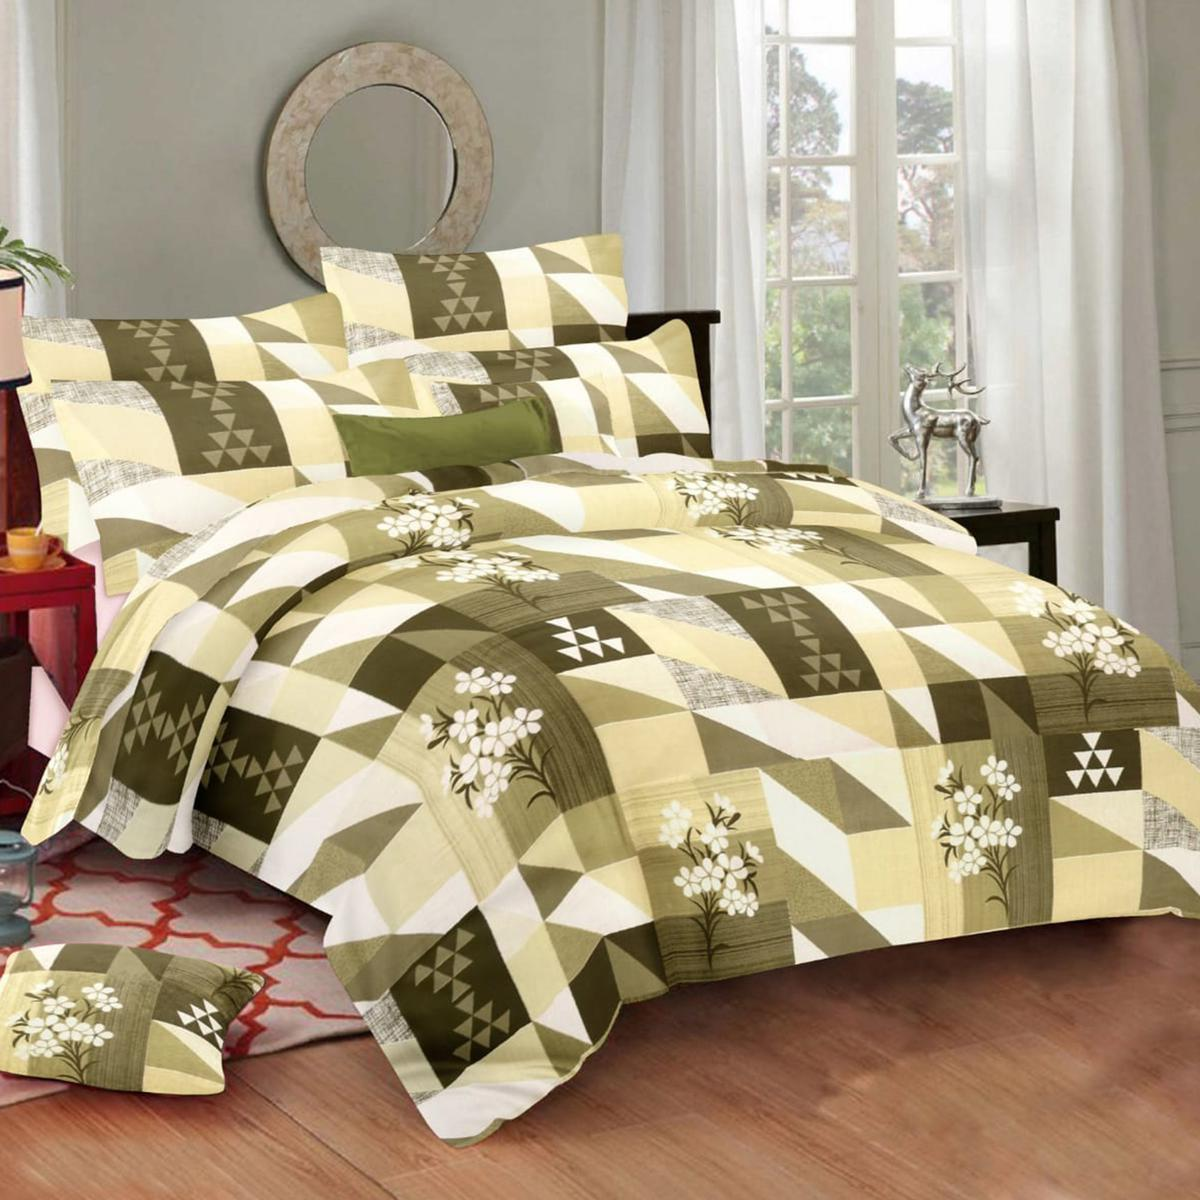 Charming Olive Green Colored Geometric Printed Cotton Double Bedsheet With Pillow Cover